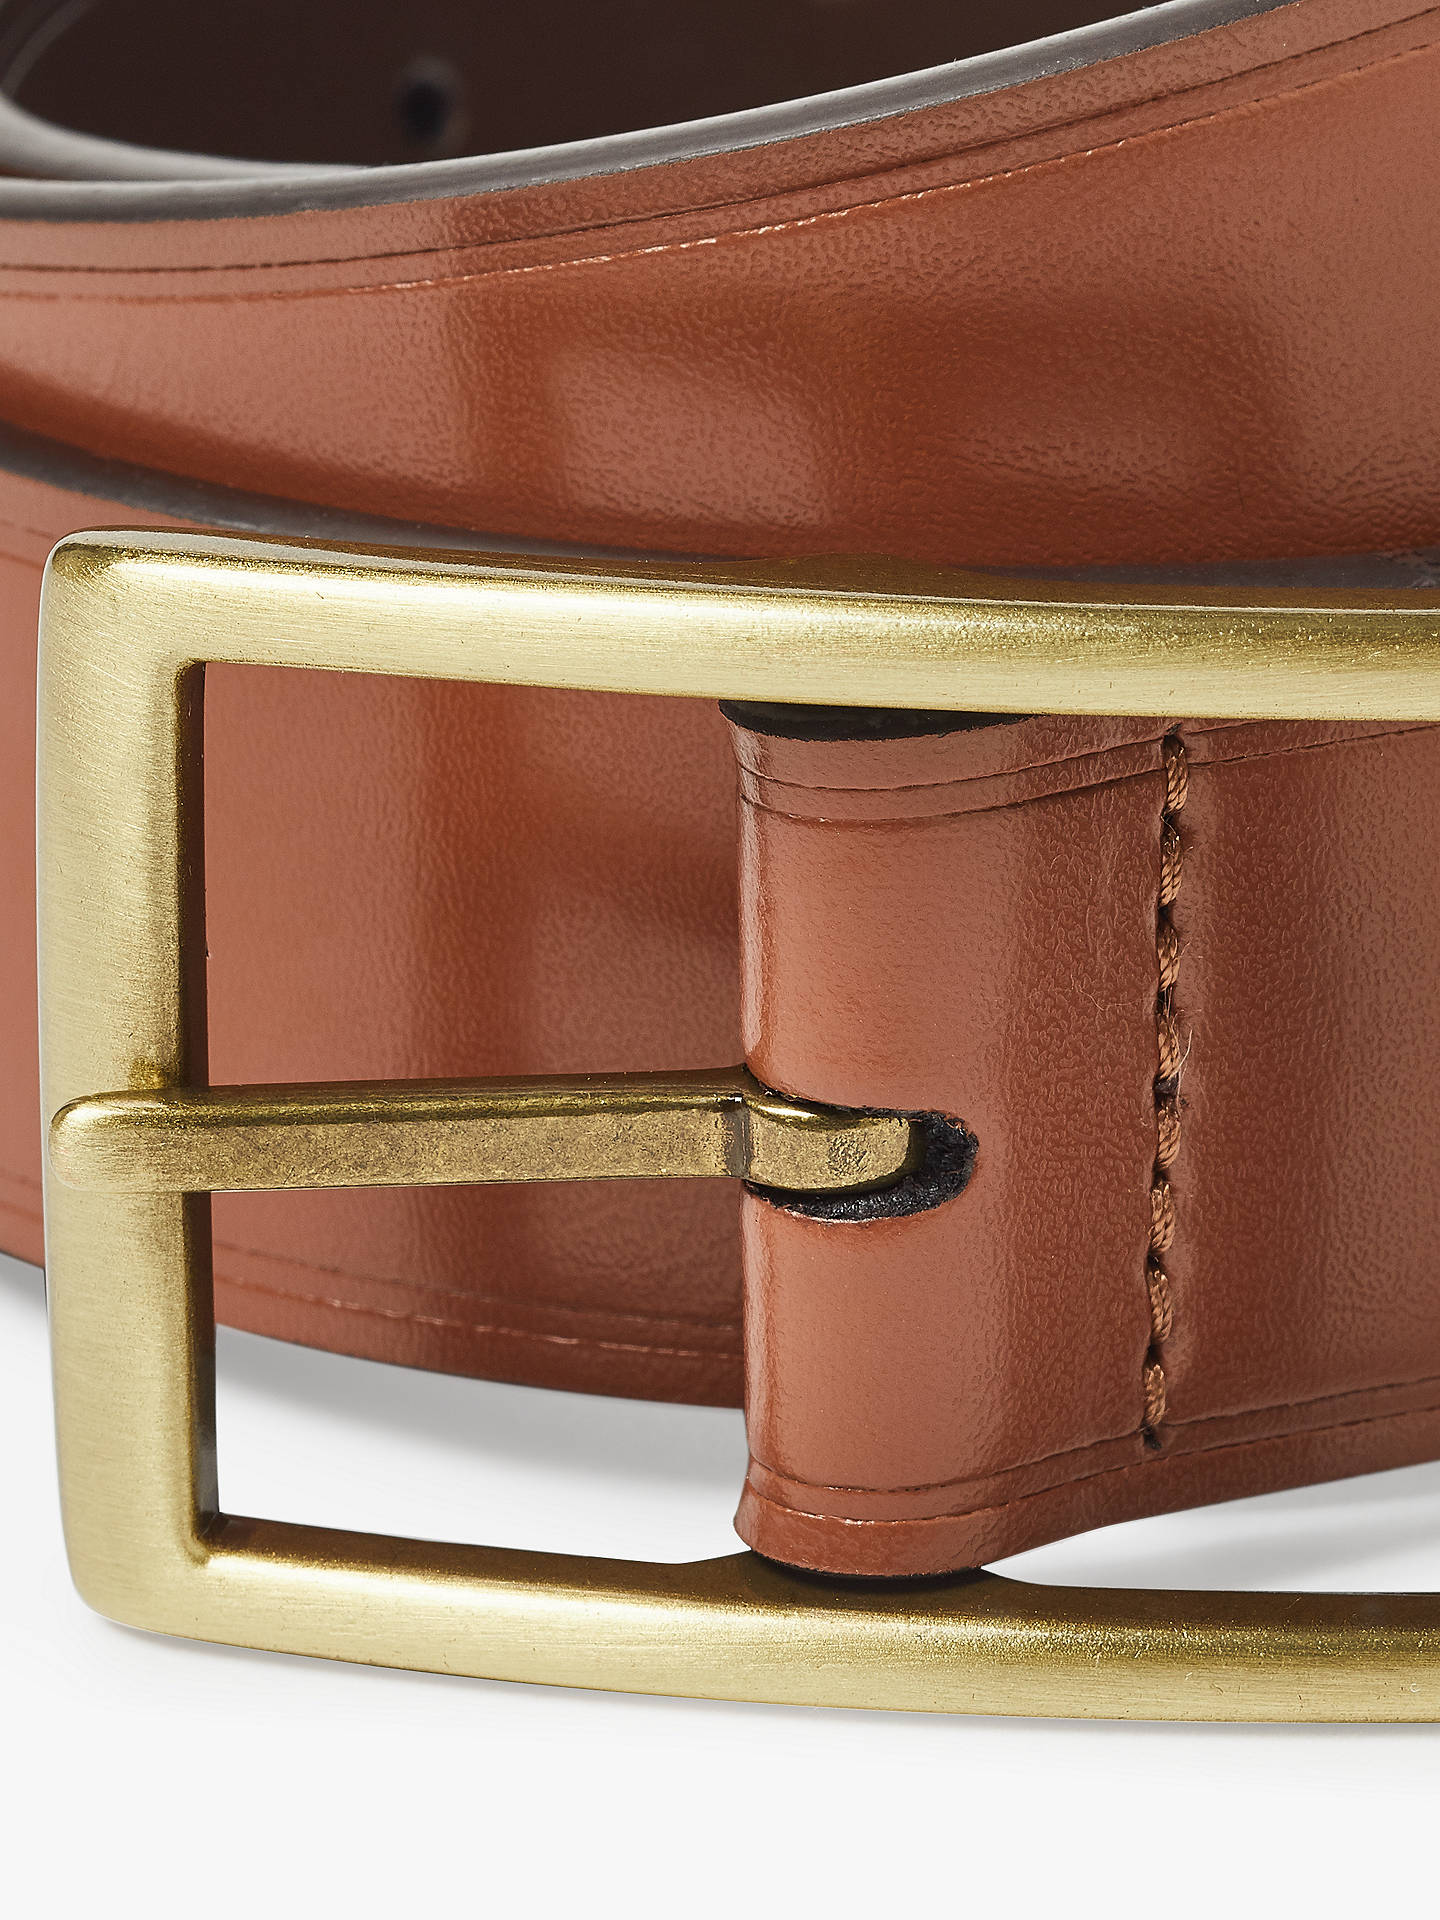 BuyJohn Lewis & Partners Full Grain Leather Stitch Belt, Tan, S Online at johnlewis.com